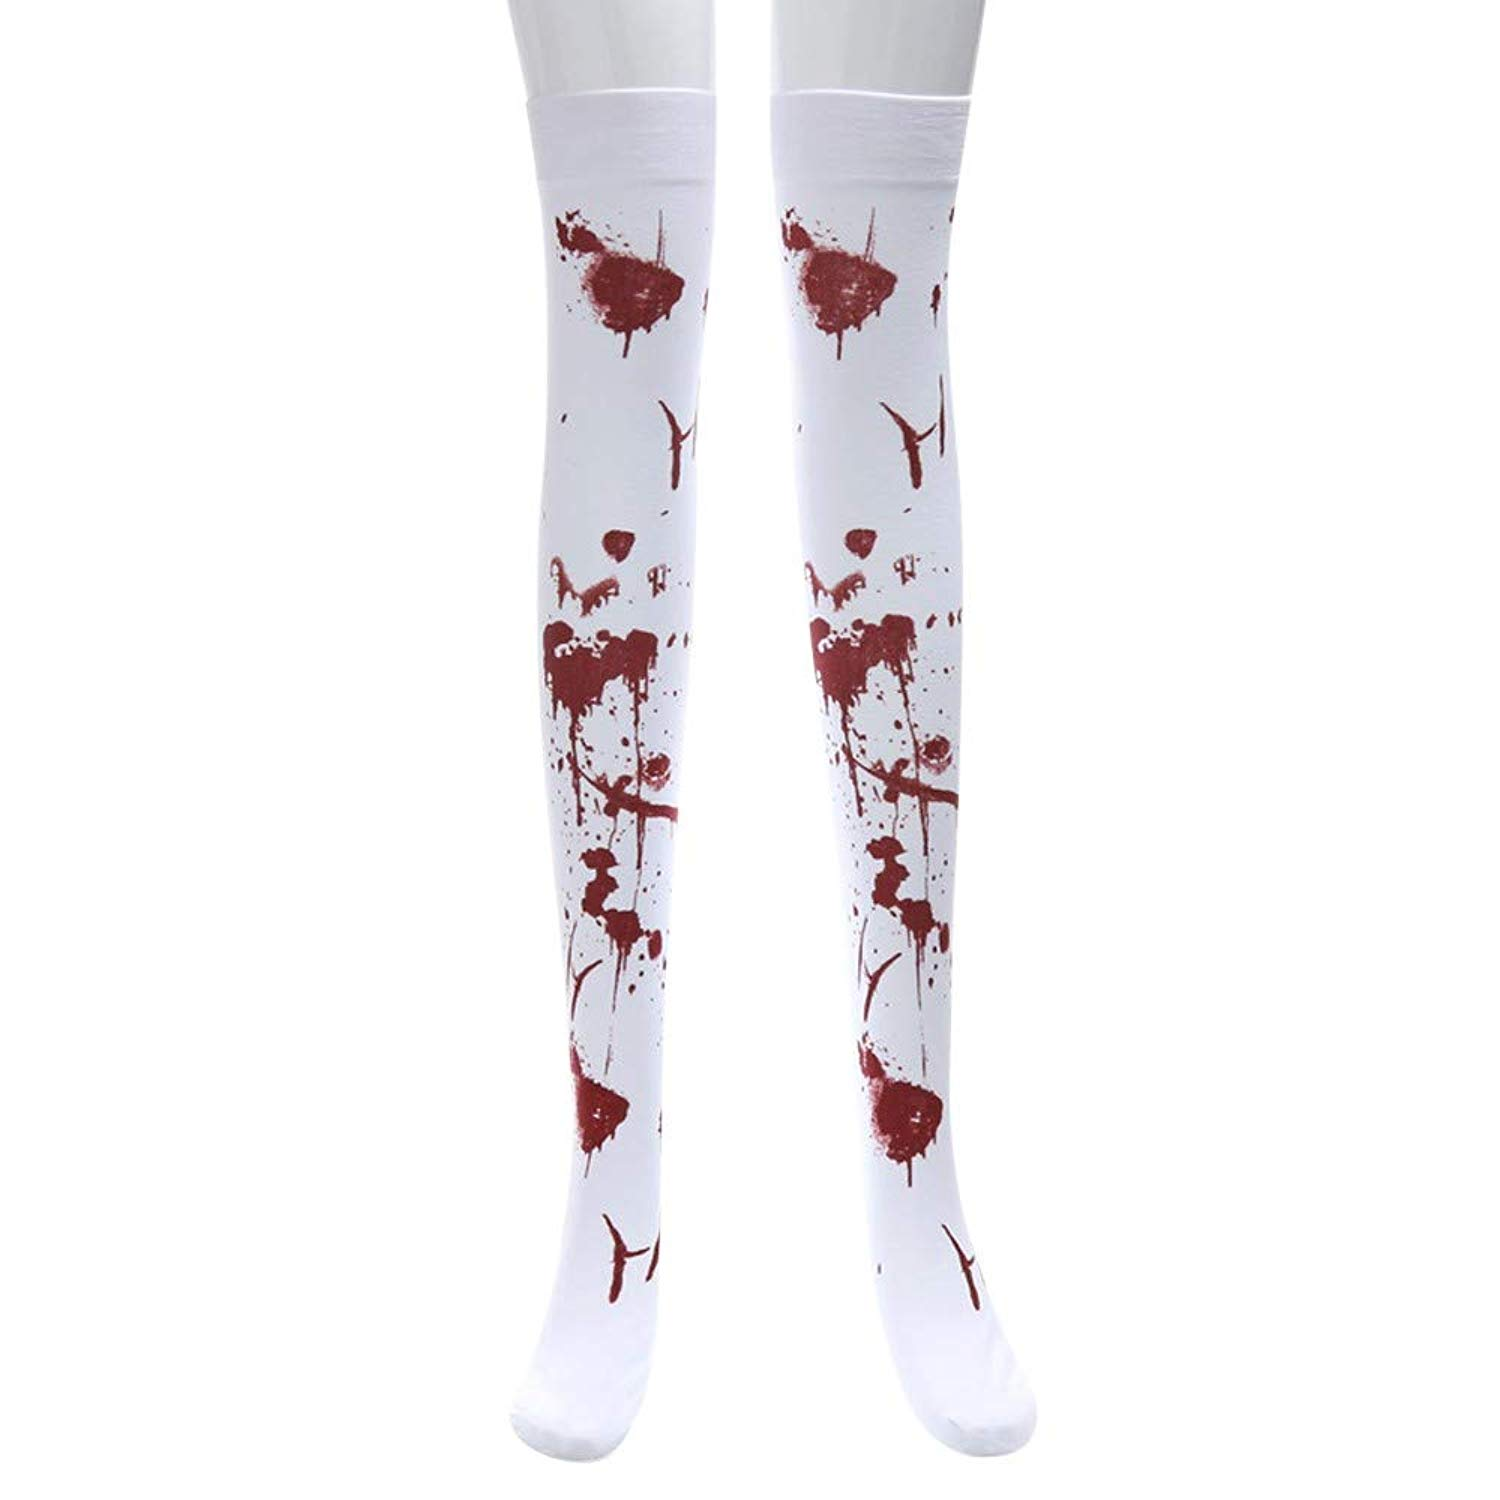 899b784ac71 Get Quotations · huaanxiaofangshebei Knee High Socks Halloween Print Long  Tube Knee Socks Fancy Dress Party Funny Dress Up